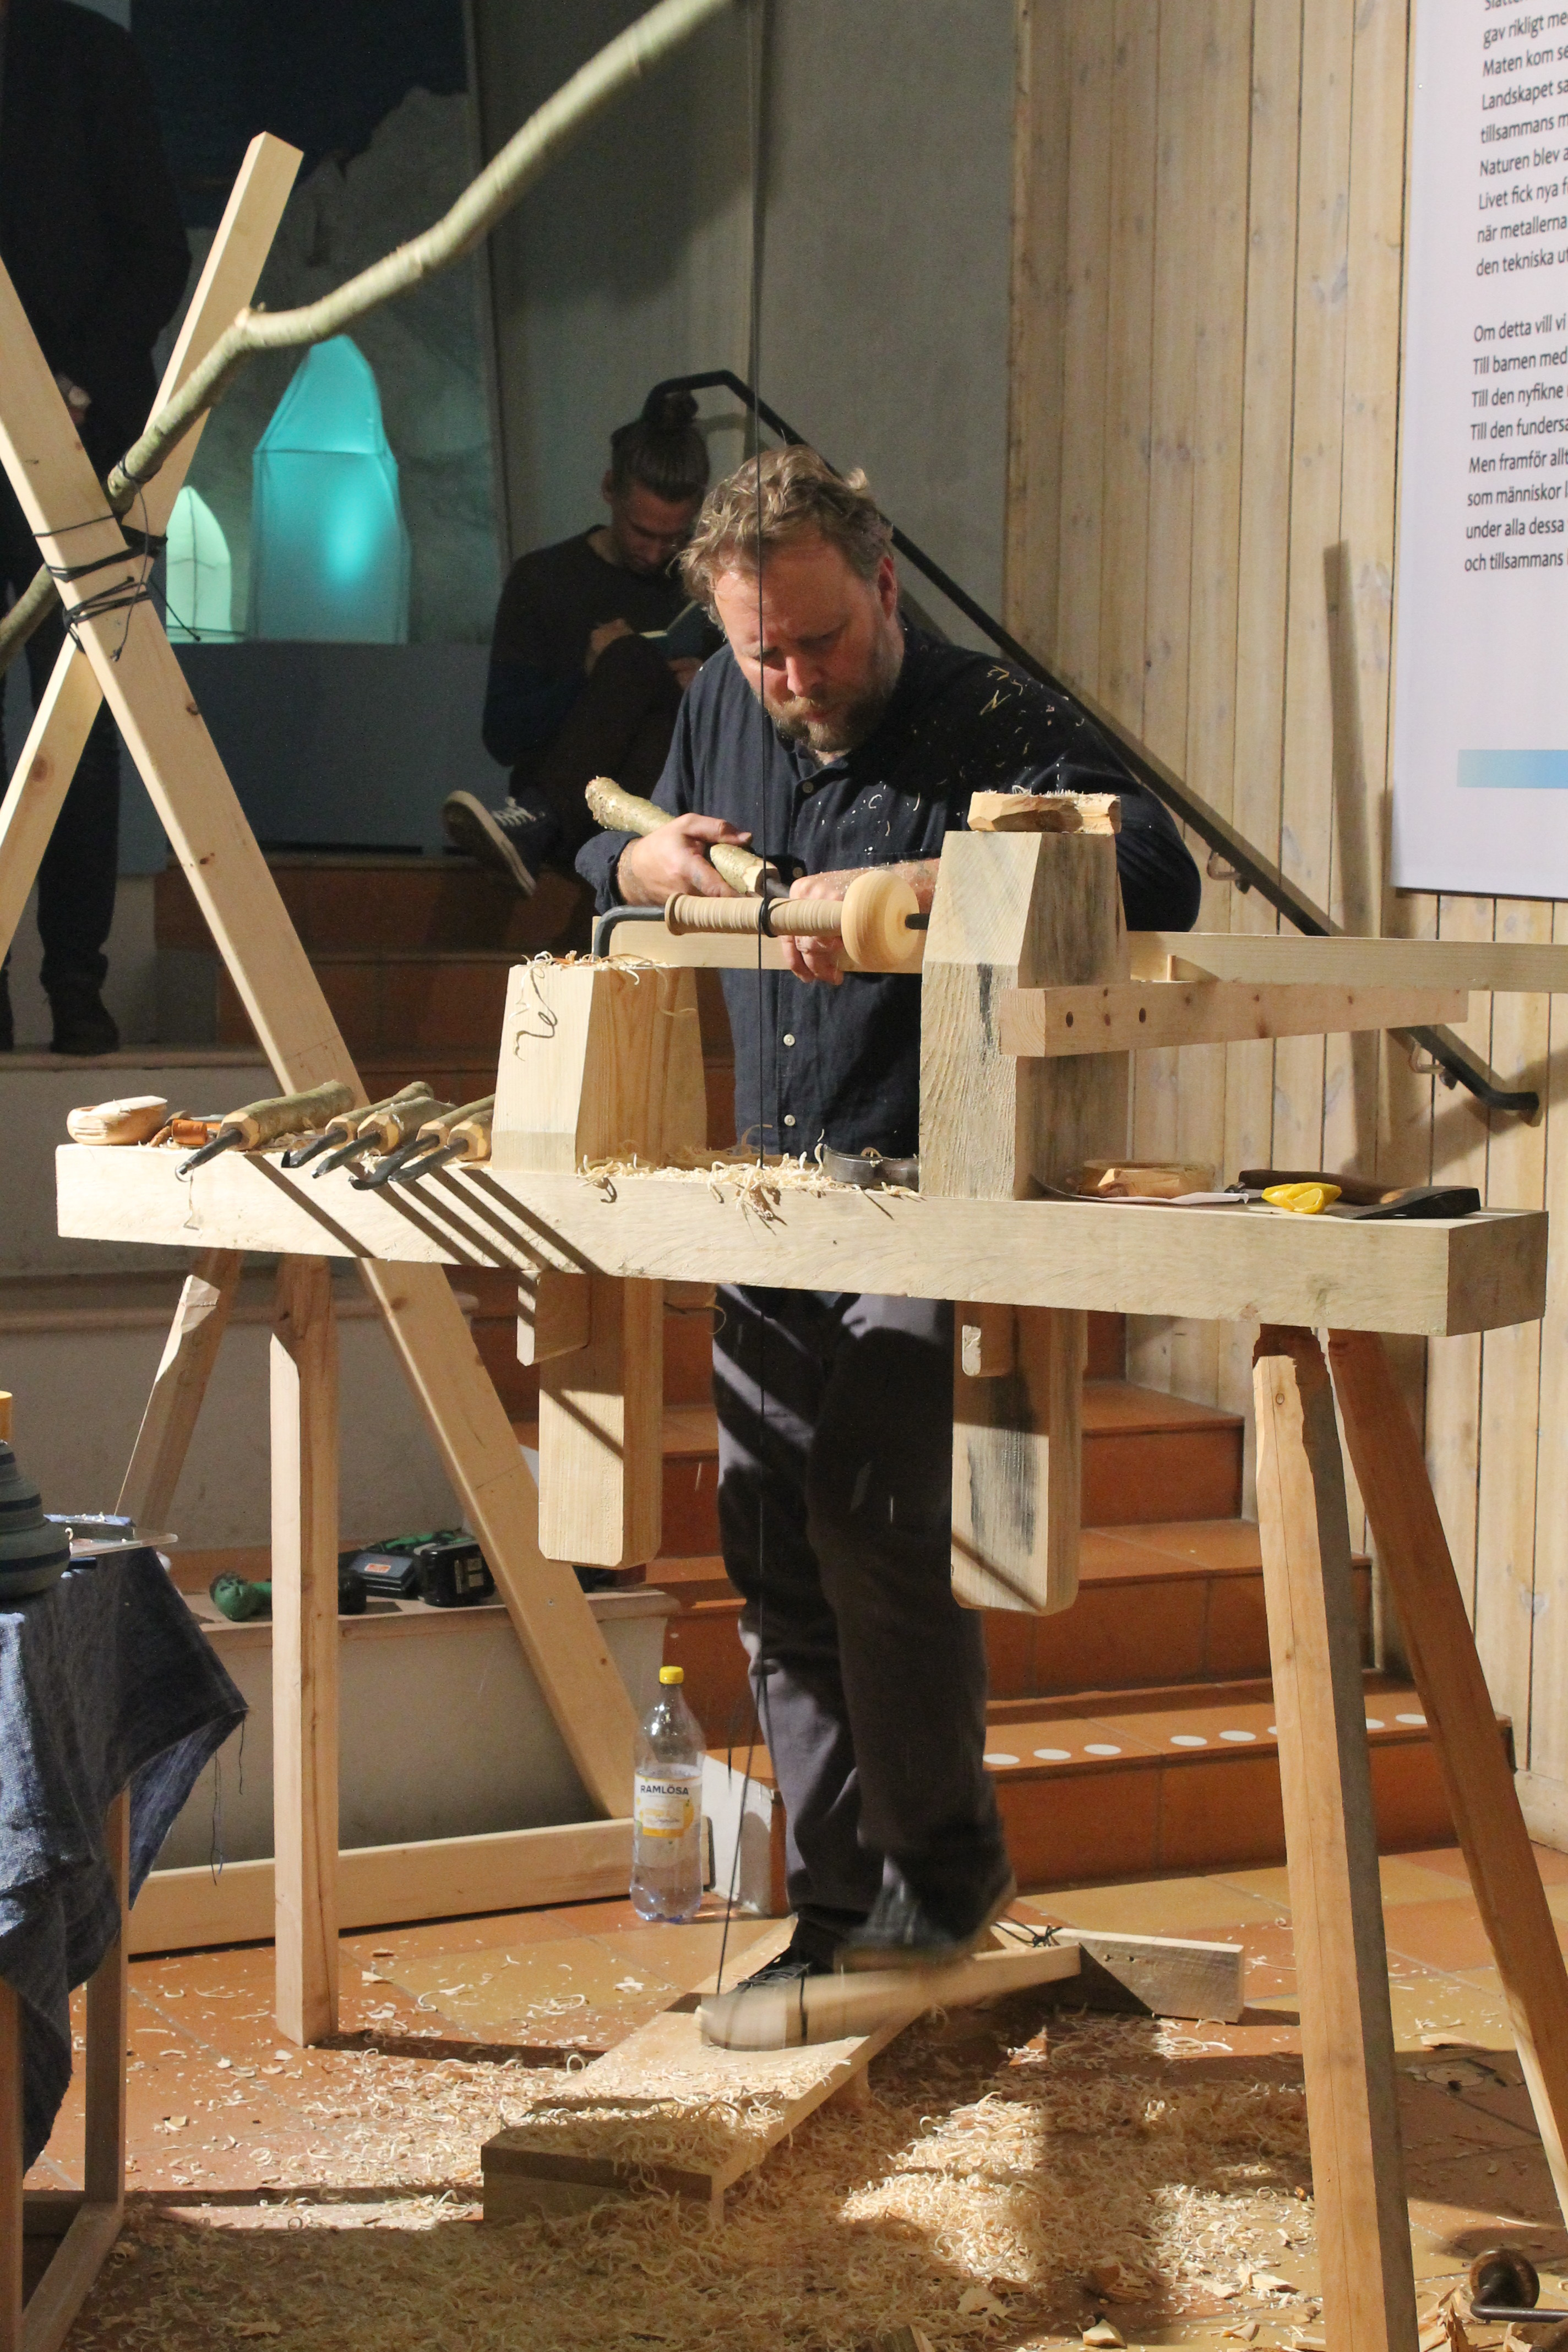 Giving a pole lathe turning demonstration in Borås, Sweden a region famous for 400 years of wood turning.